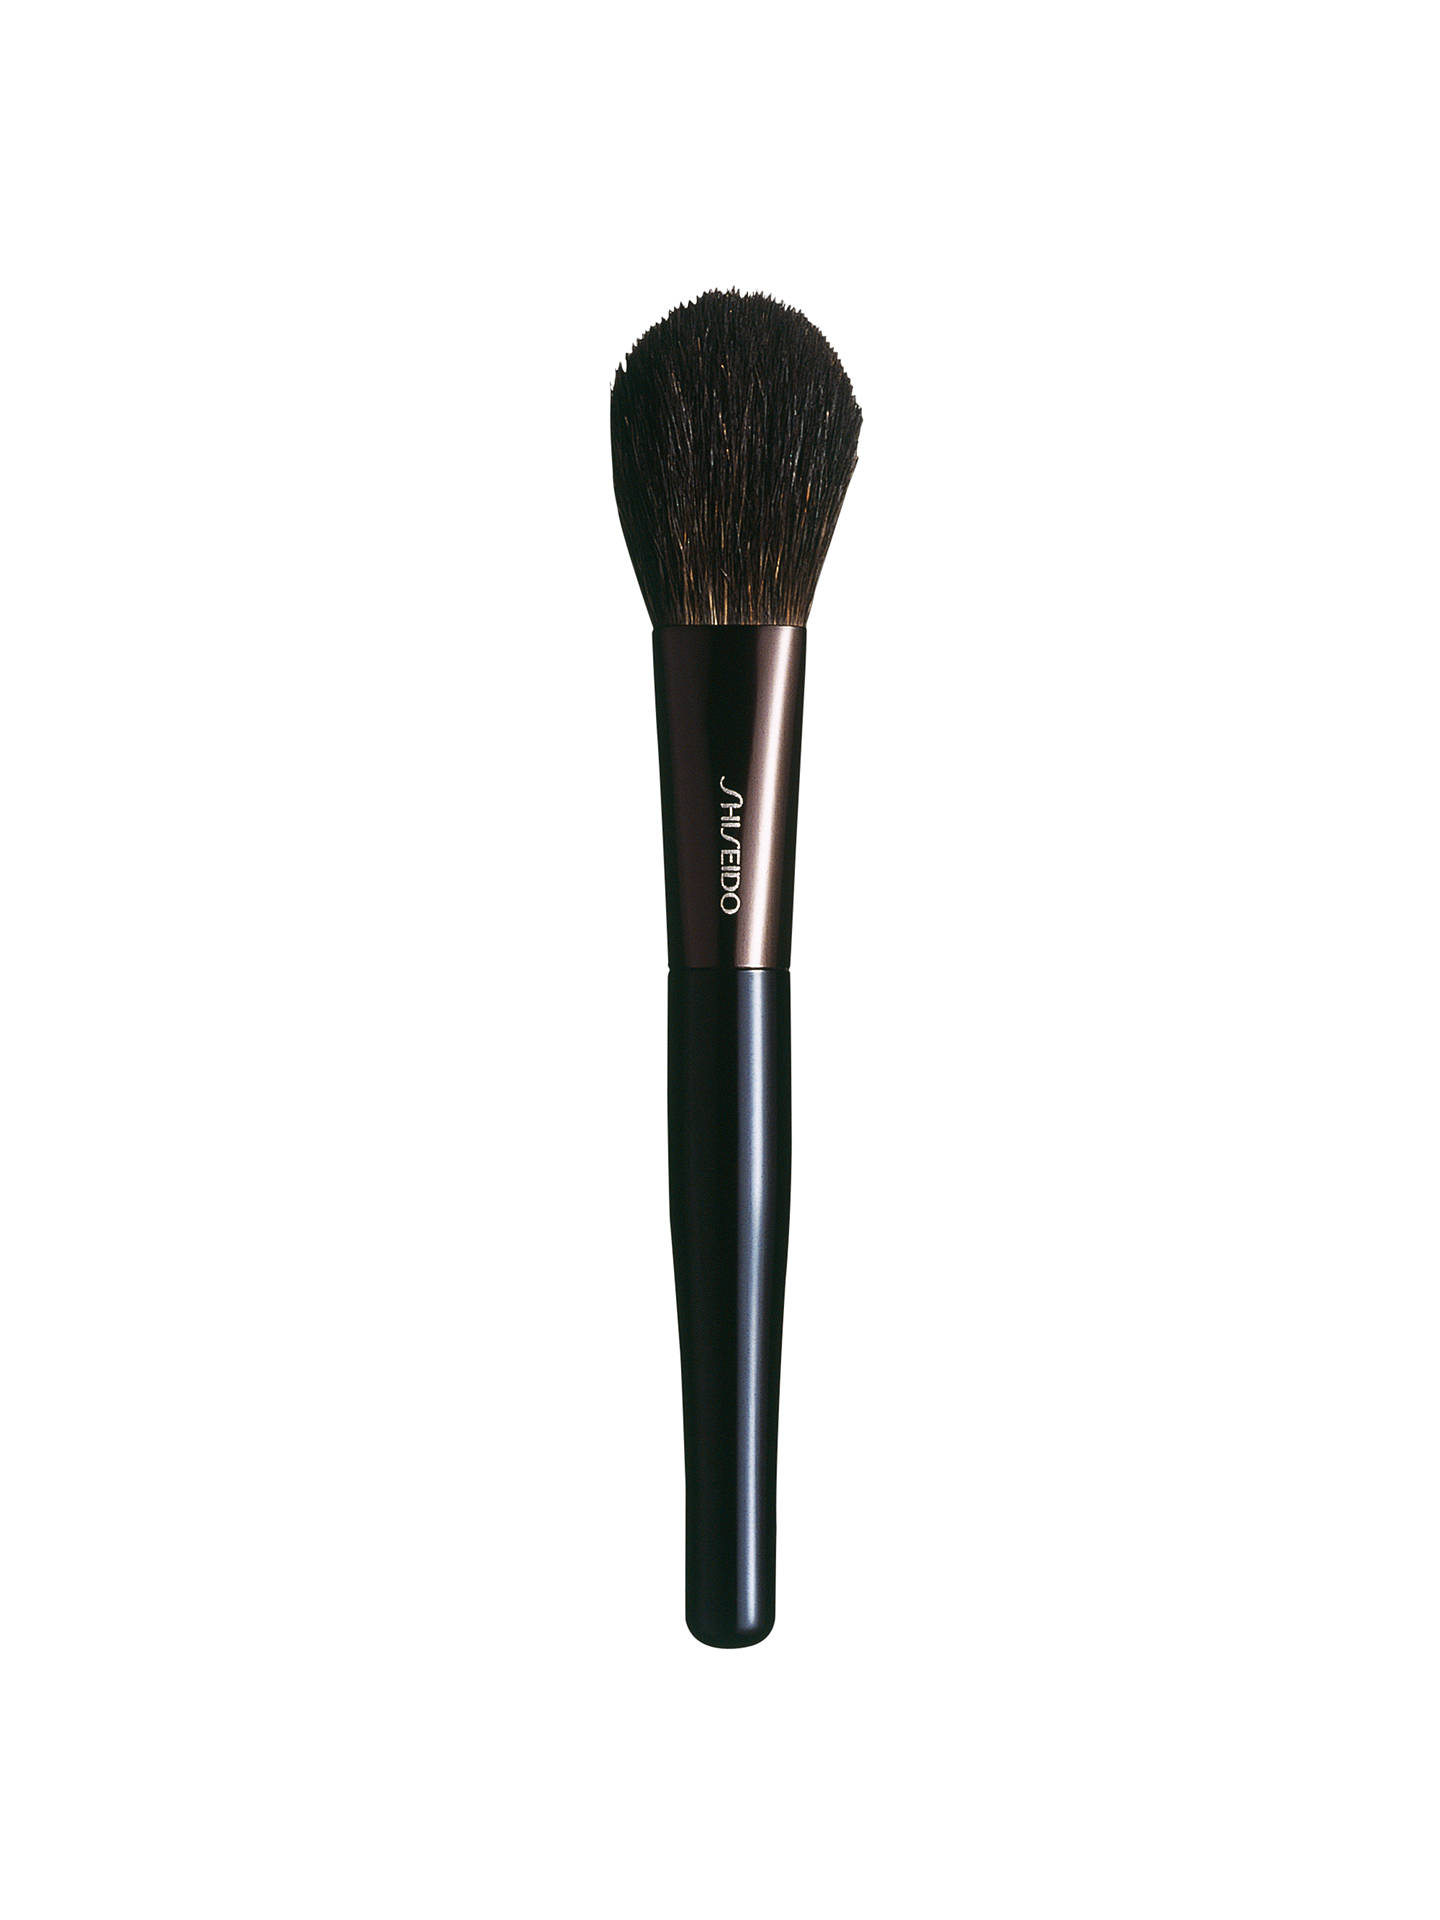 BuyShiseido Blush Brush Online at johnlewis.com